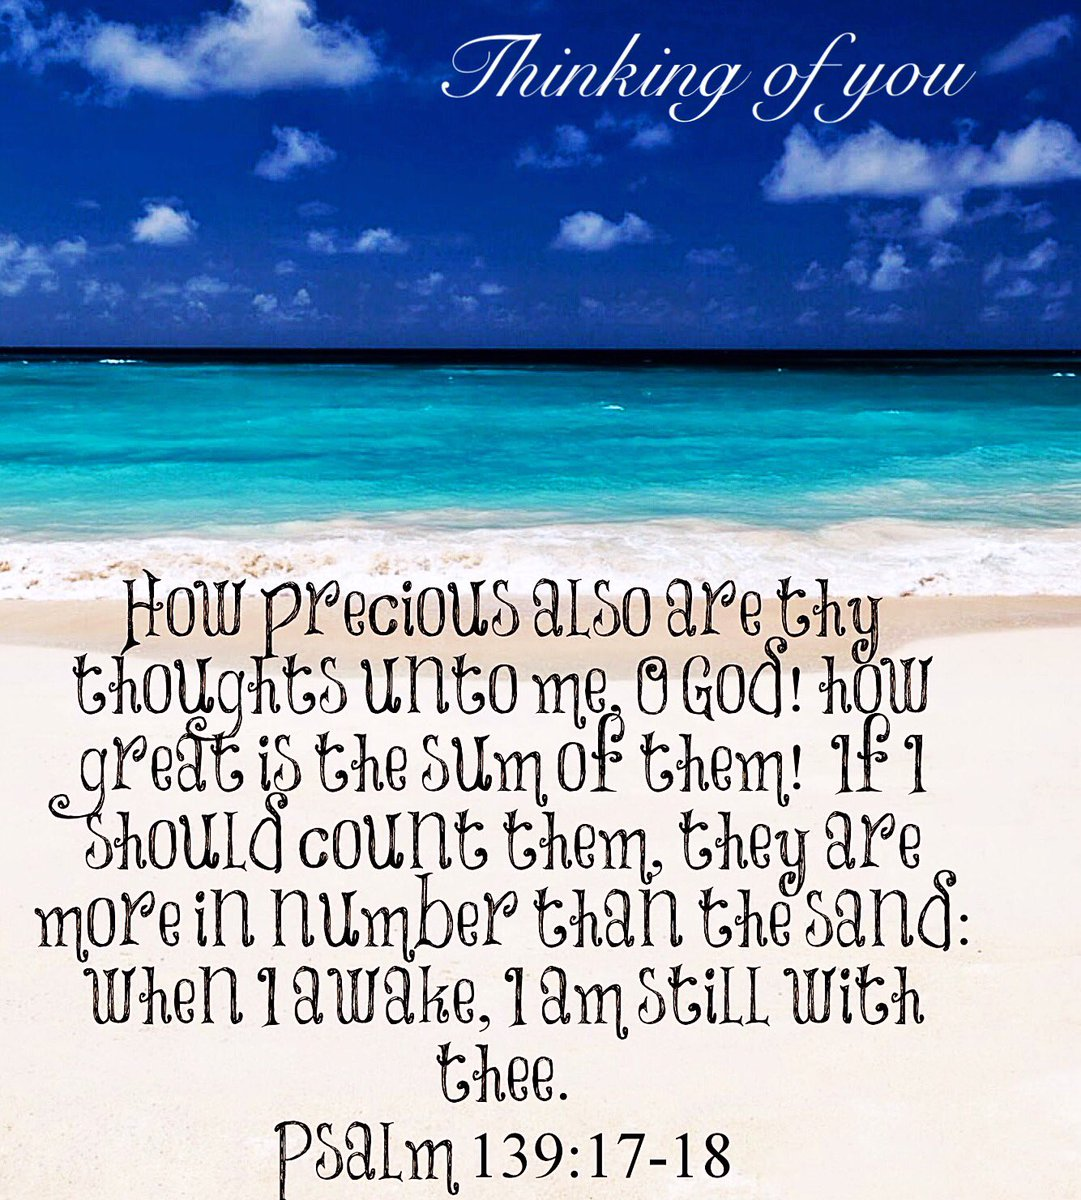 Your thoughts and plans are #Treasures to me I cherish each and every one of them more, than I can count  #ThankYouLord Your Love Covers me<br>http://pic.twitter.com/4PhkADyo9P